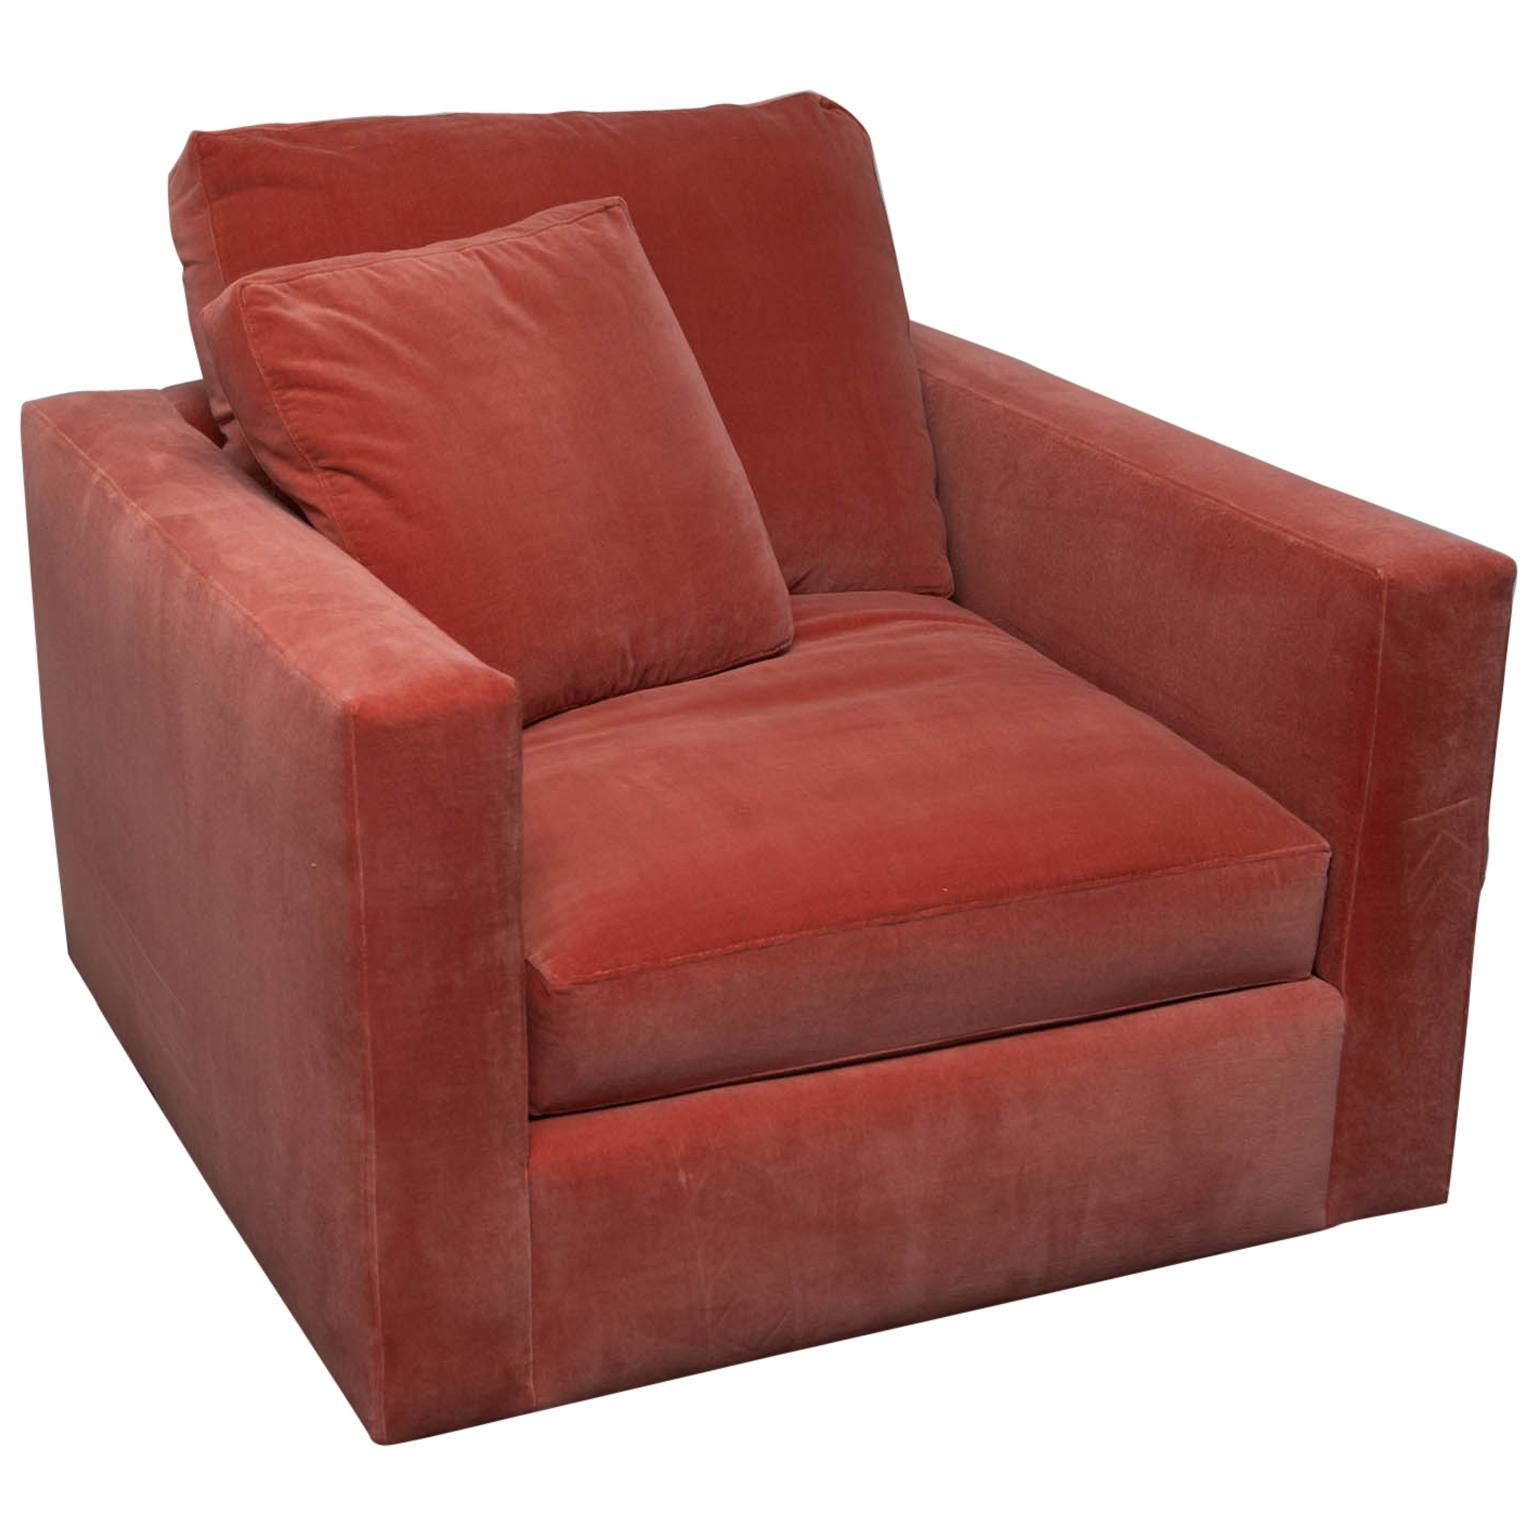 Large Tuxedo Arm Swivel Club Chair In Salmon Ultrasuede For Sale